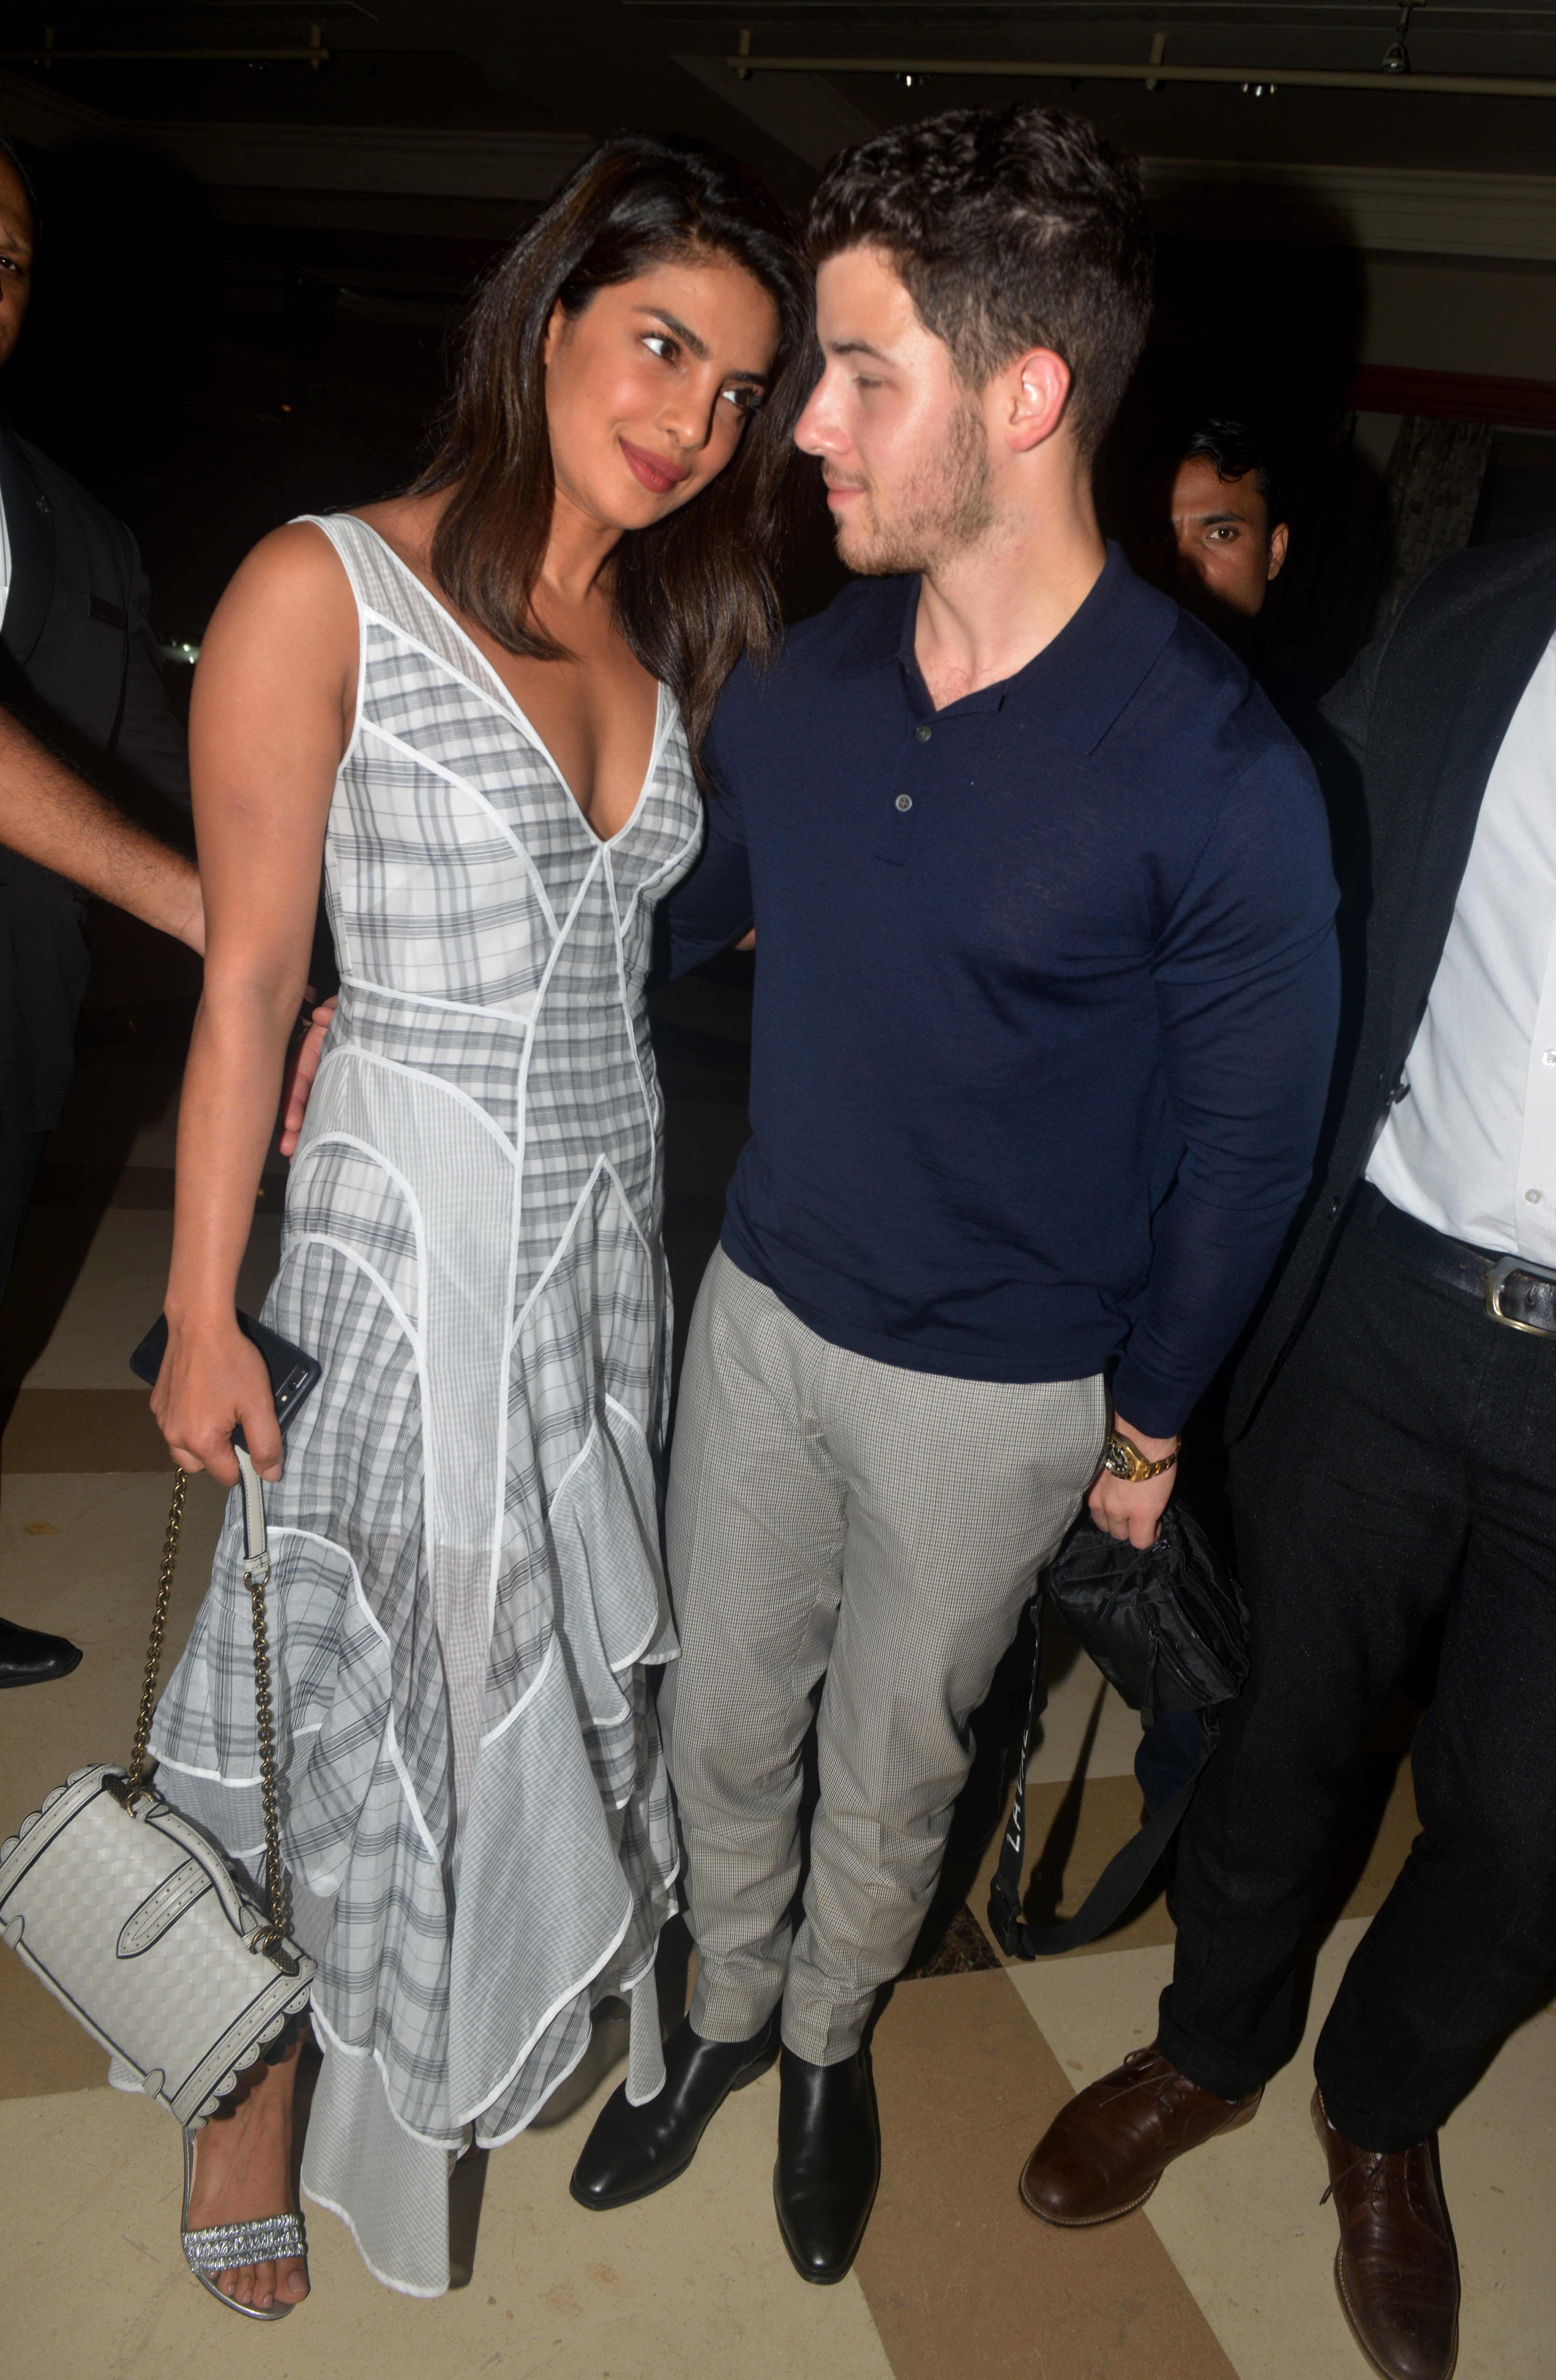 nick jonas's new song 'right now' is about priyanka chopra - is nick